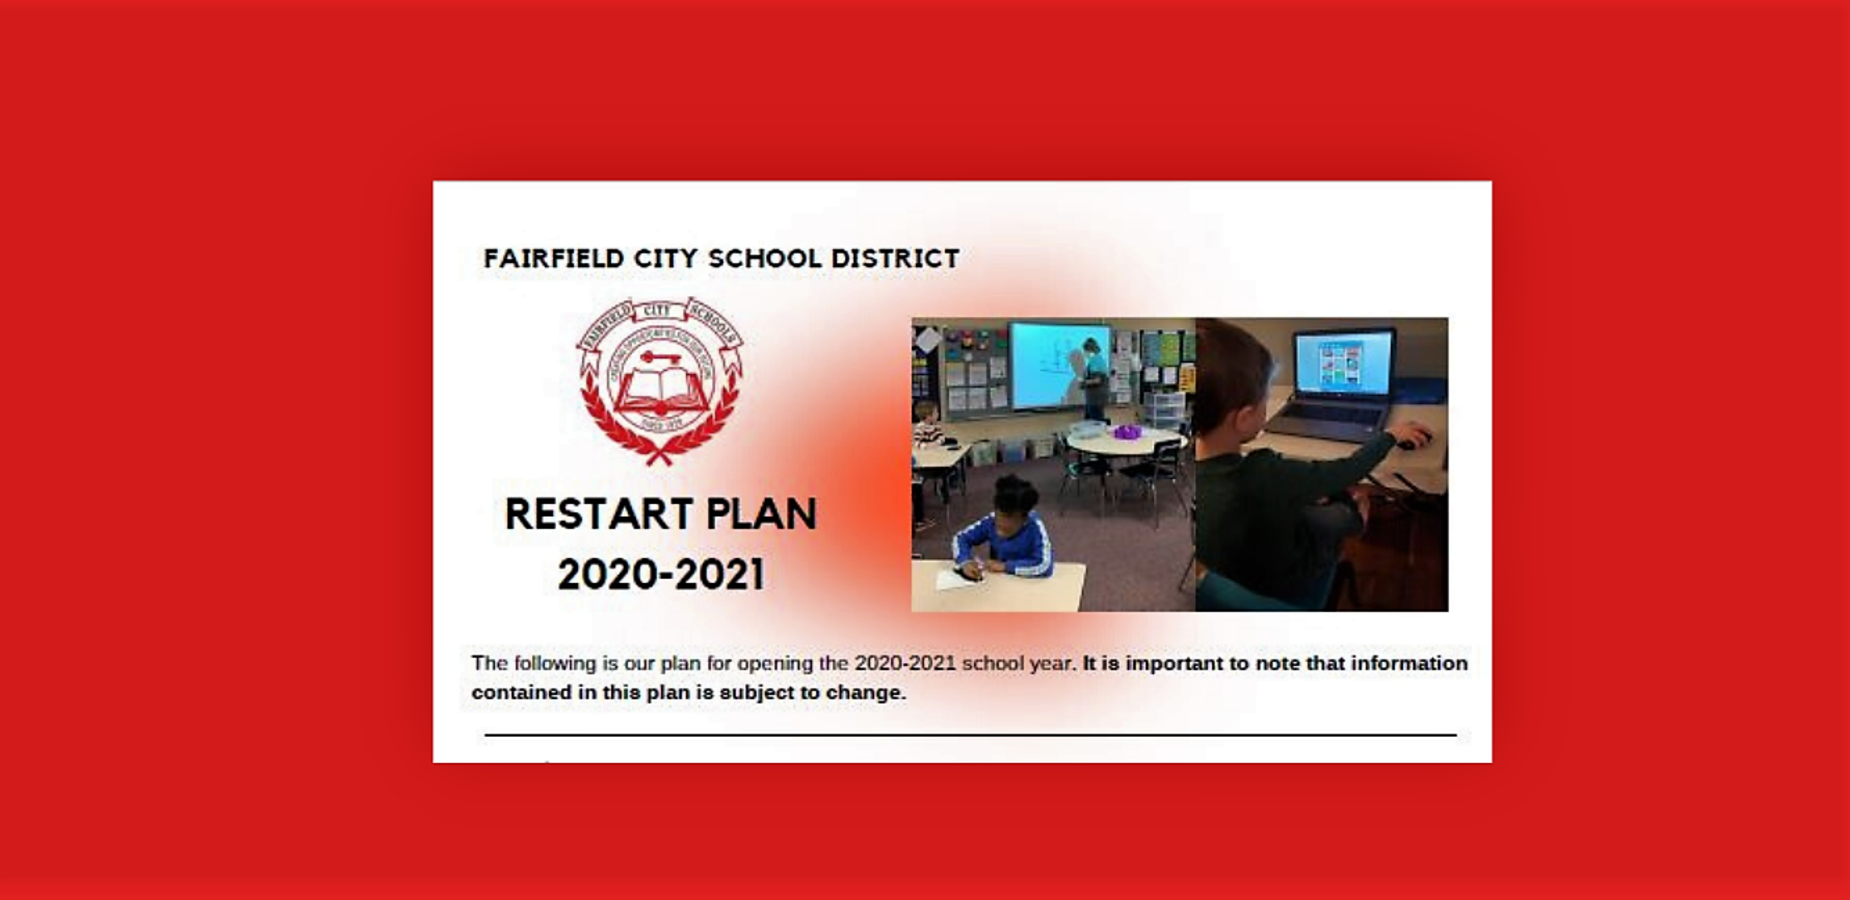 This is an image of the title page for the 20-21 school year restart information